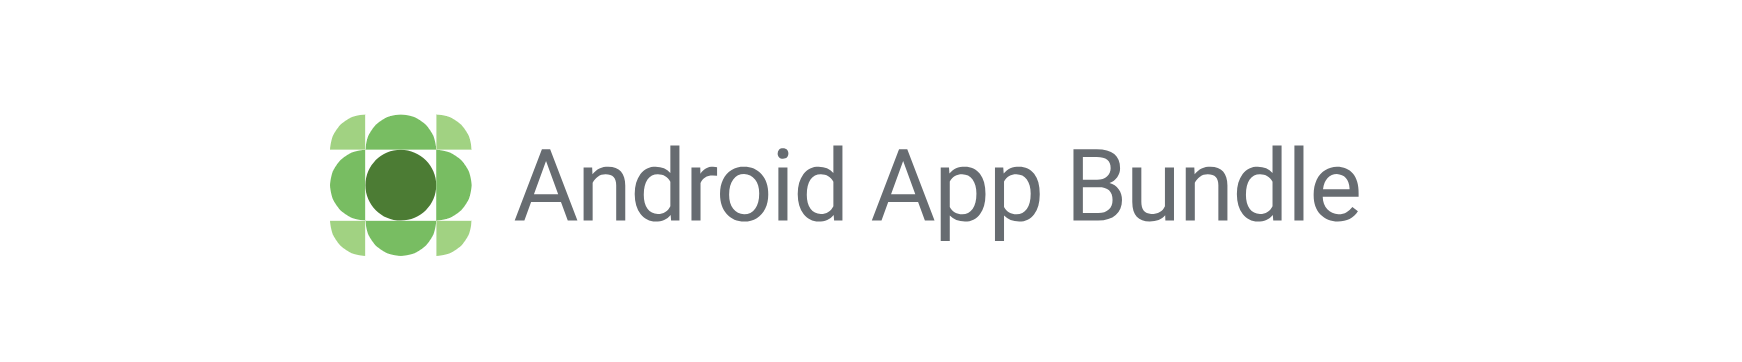 Android App Bundle : Modular and Dynamic App Delivery : Part-1